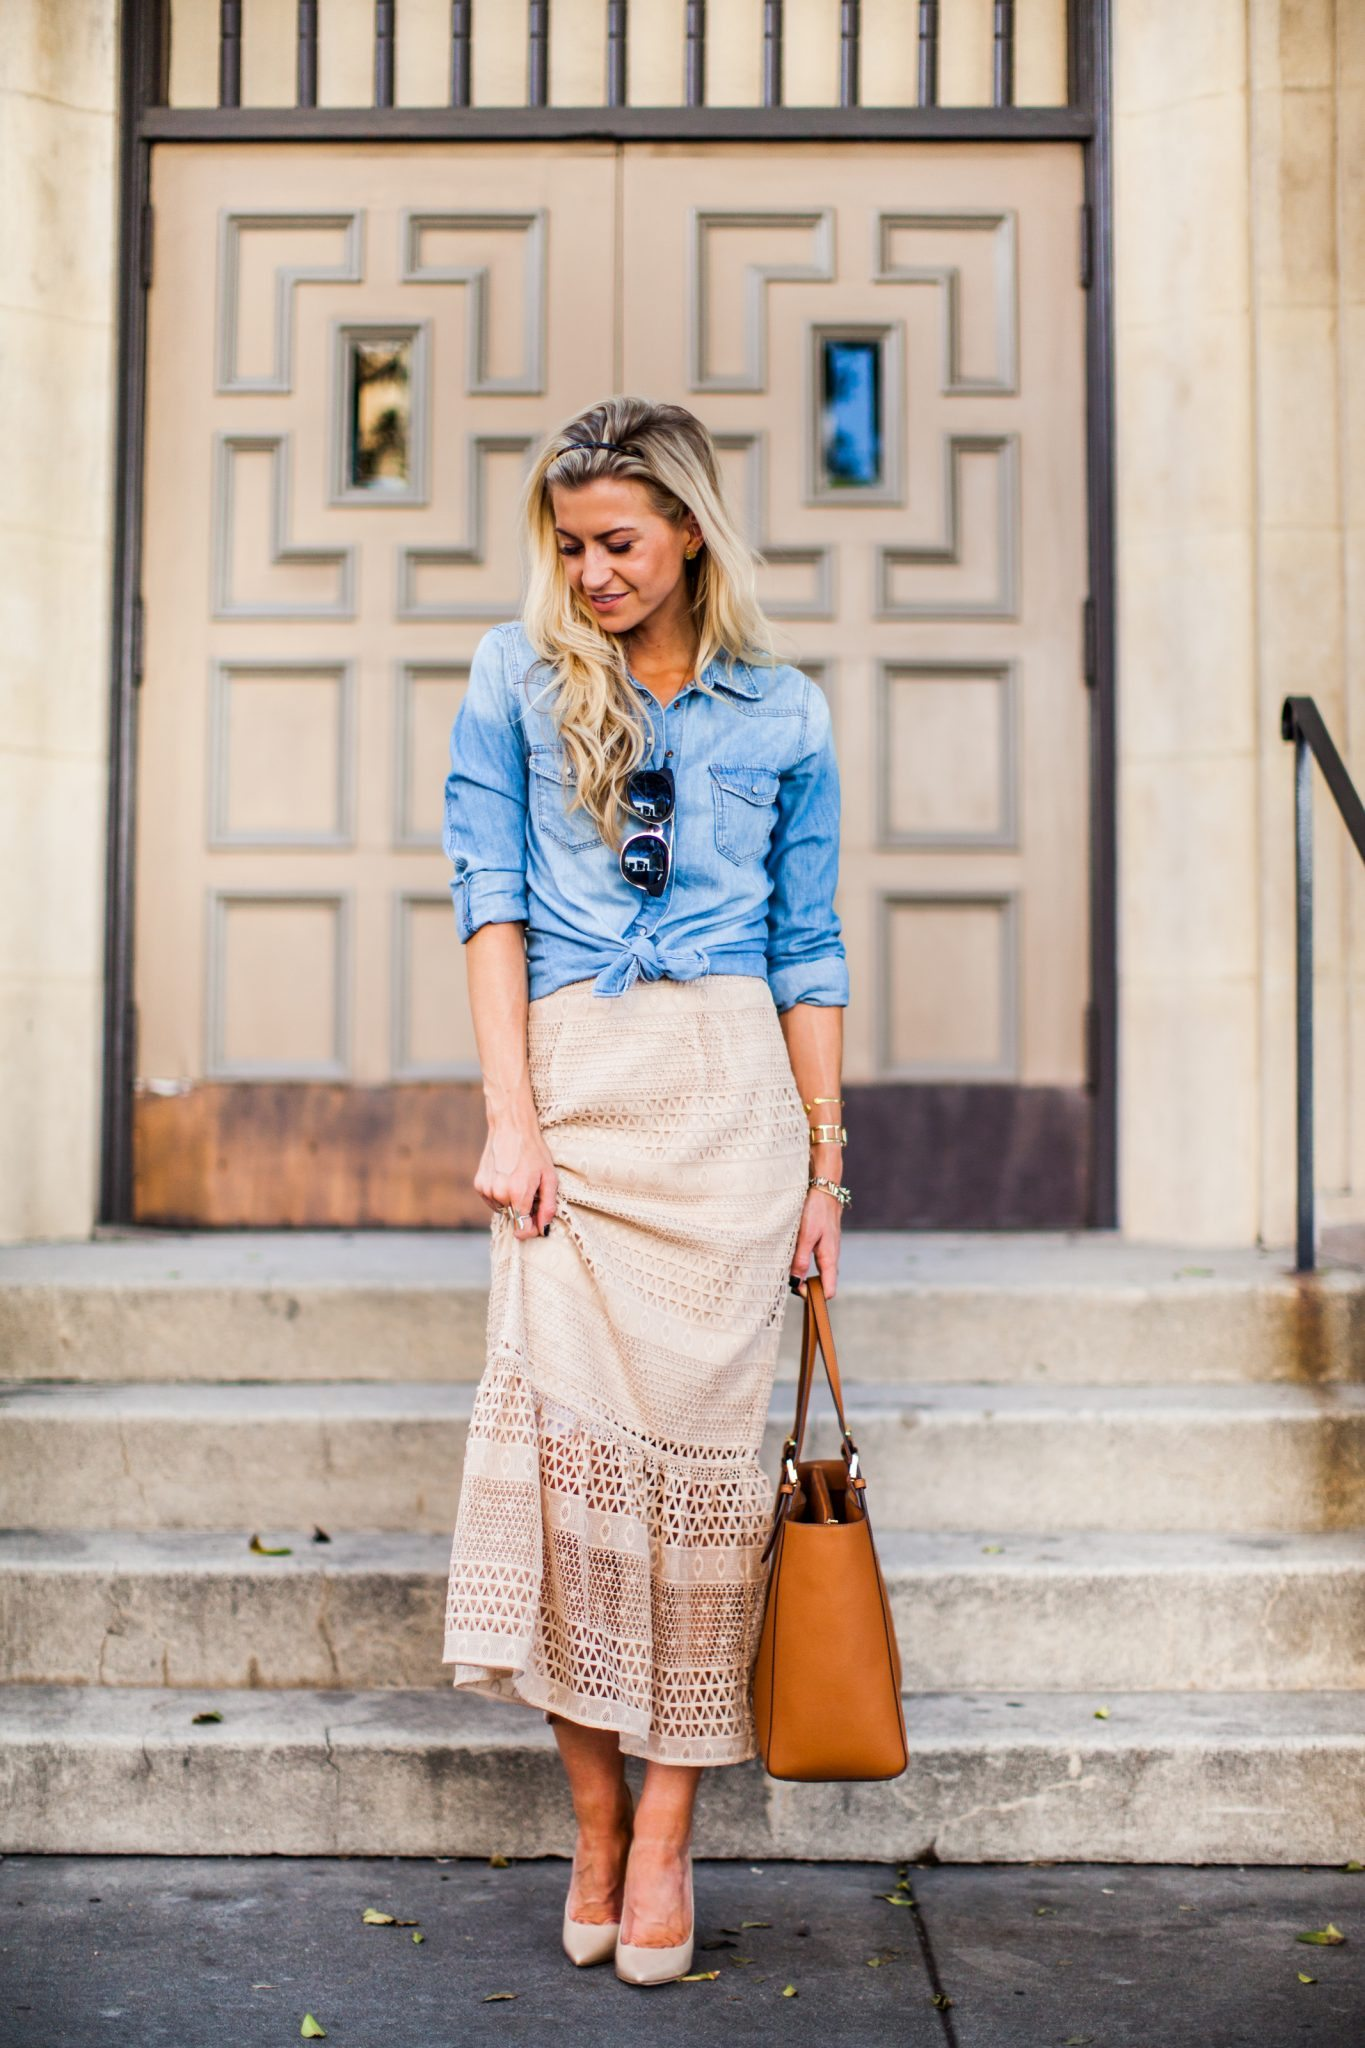 Champagne lace peplum midi skirt + chambray top